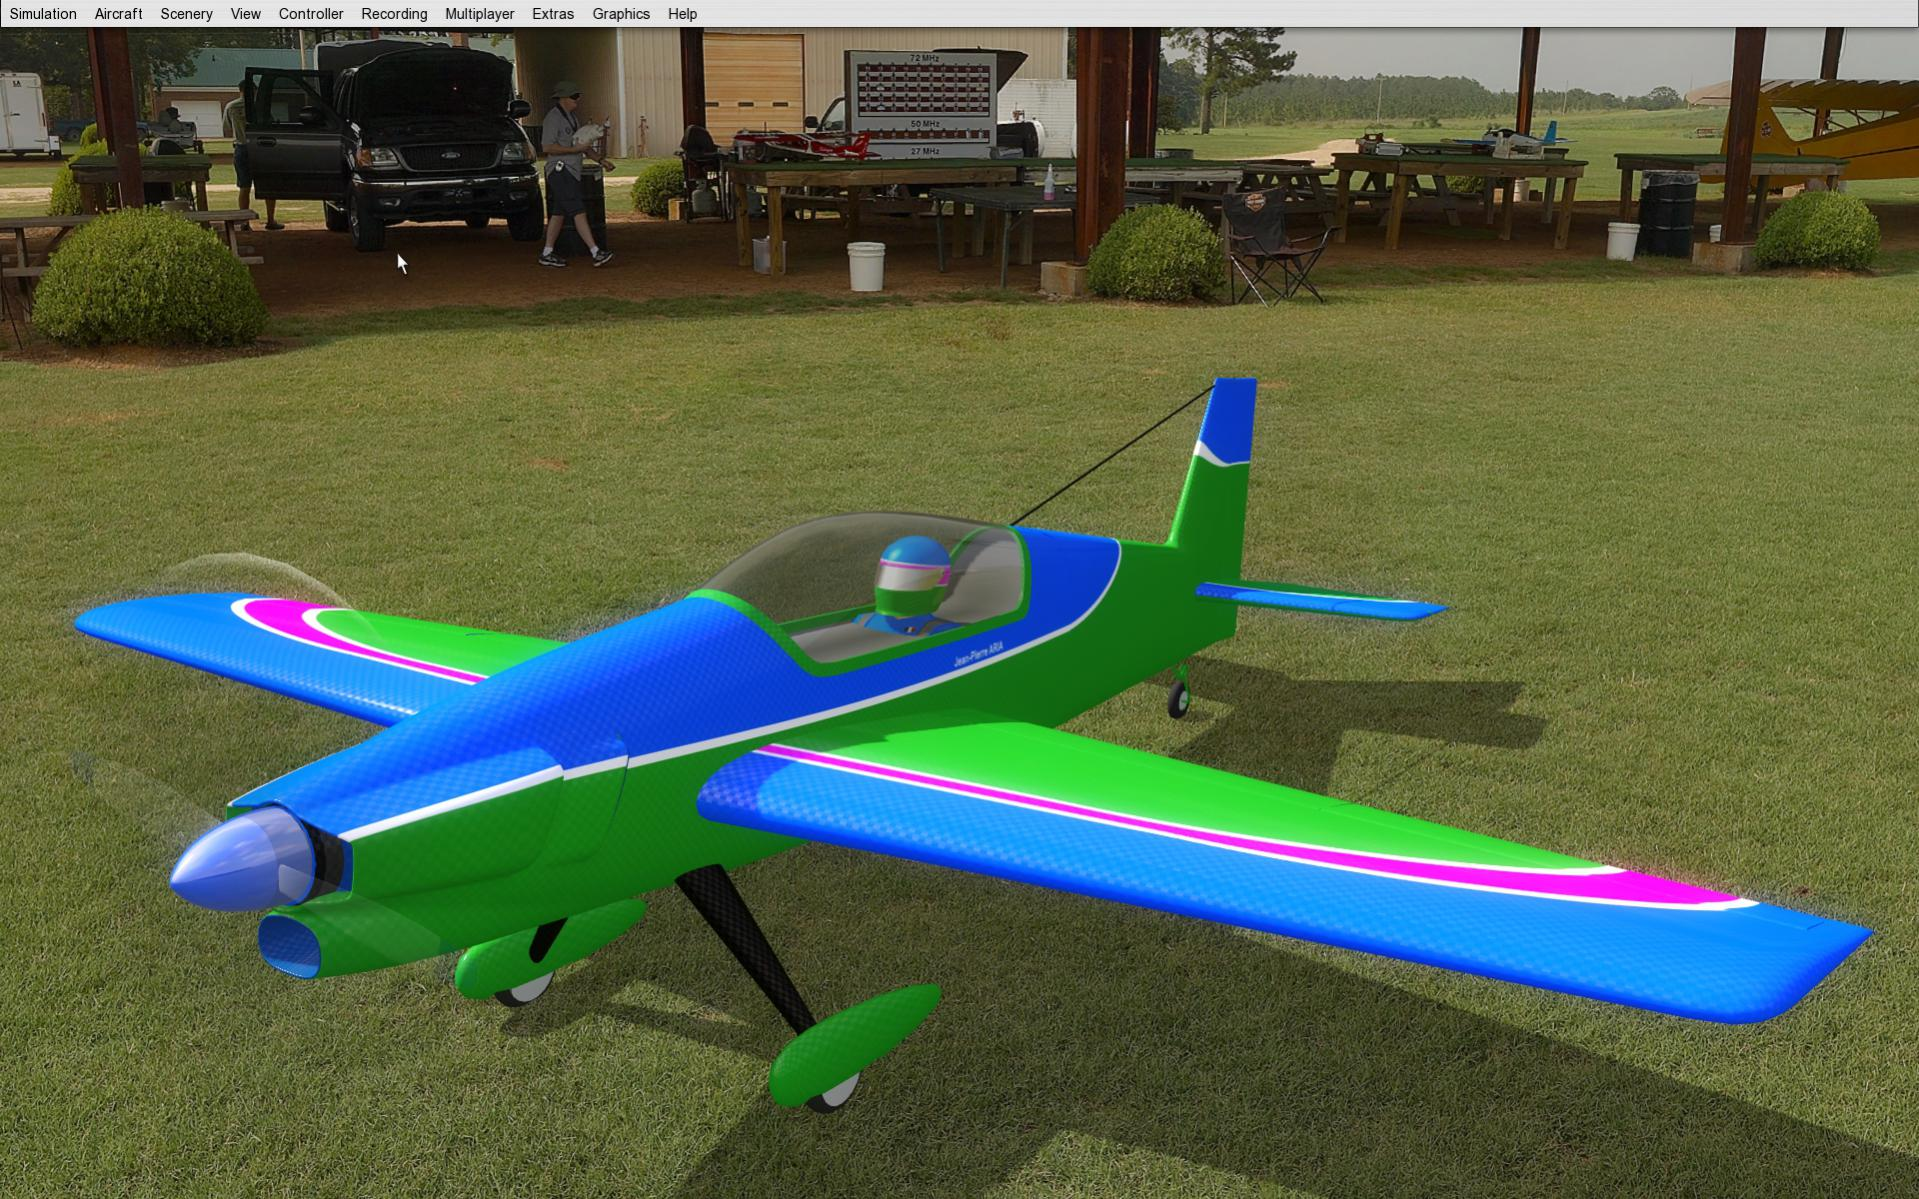 Ikarus aerofly 5.7 download